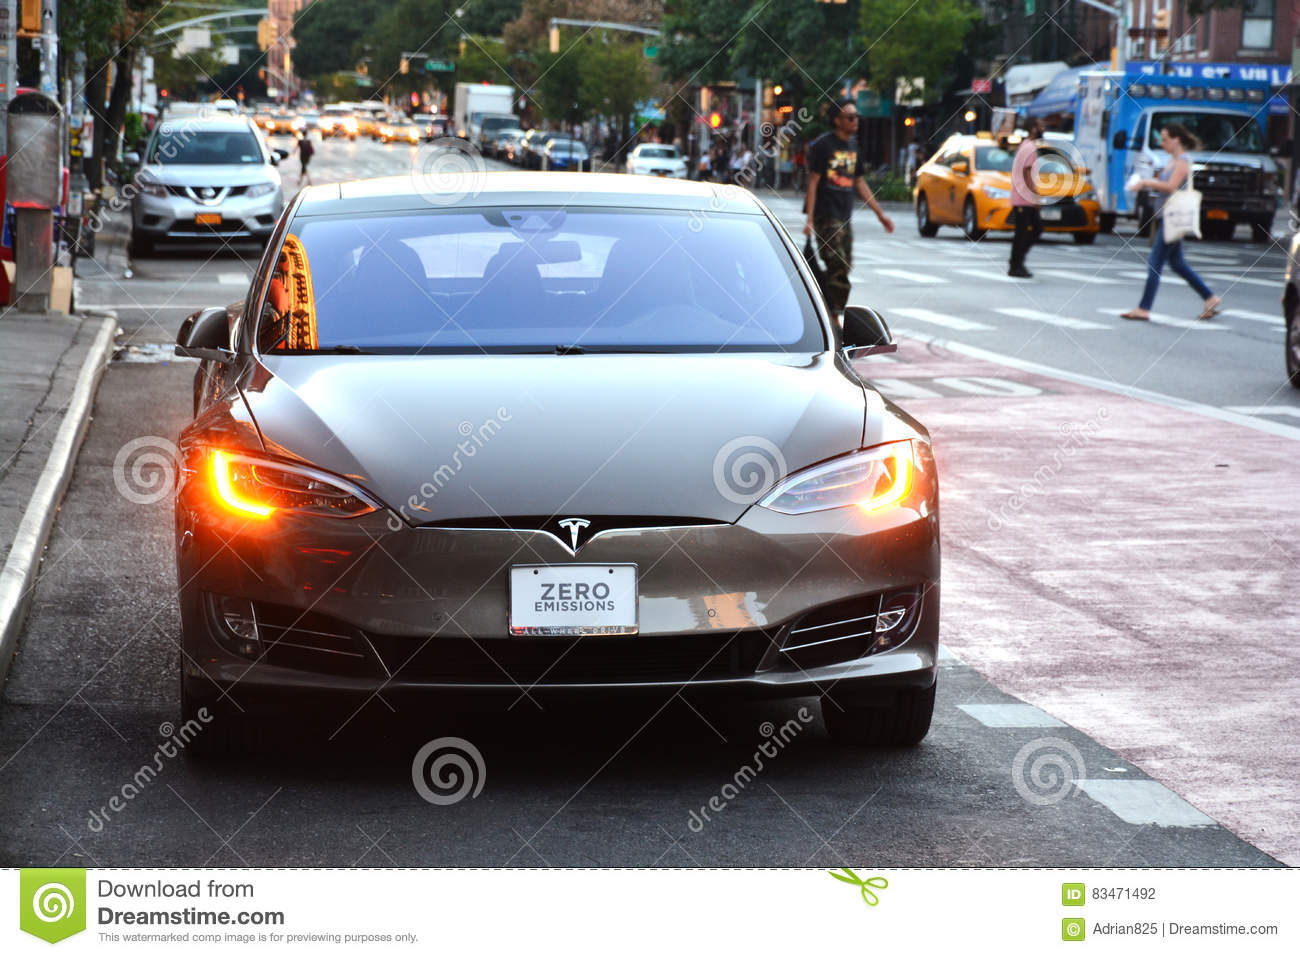 Tesla Electric Car With Zero Emissions Text On The License Plate